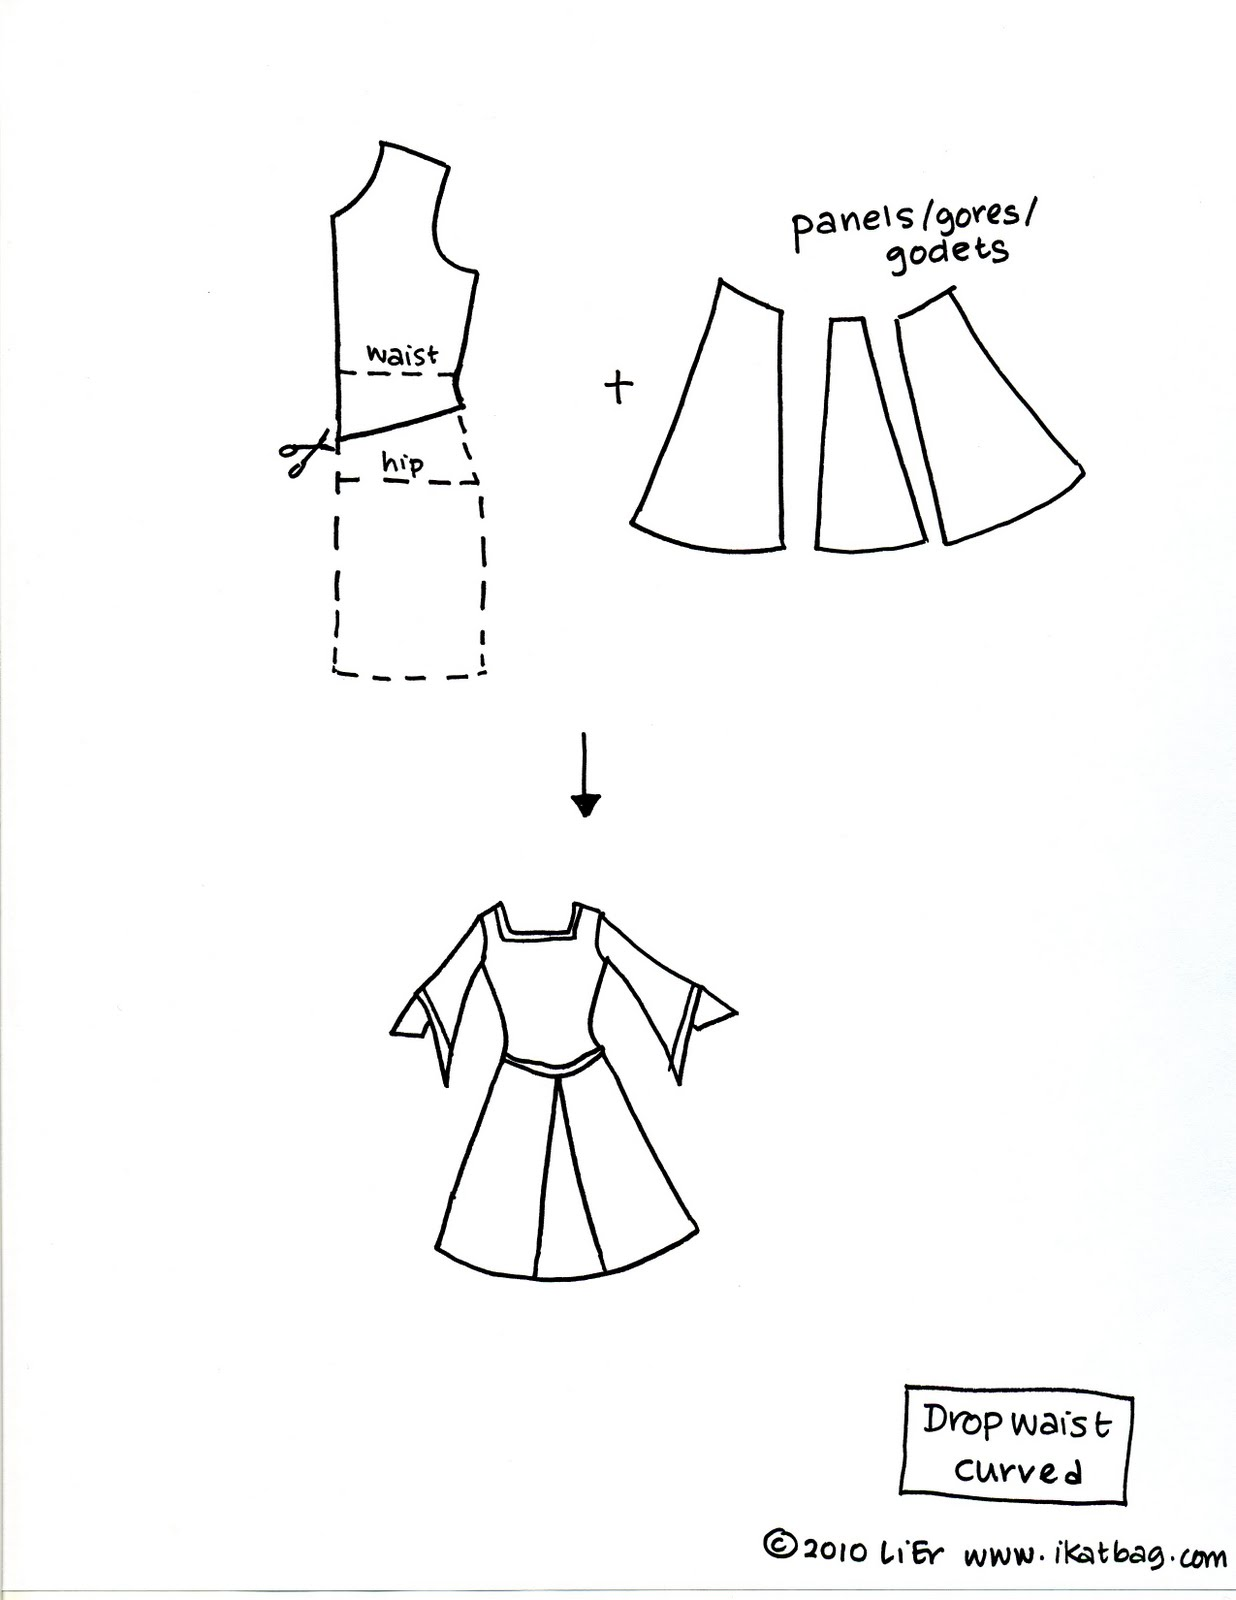 Festival Costumes Drawing The Second Variation Has Ease